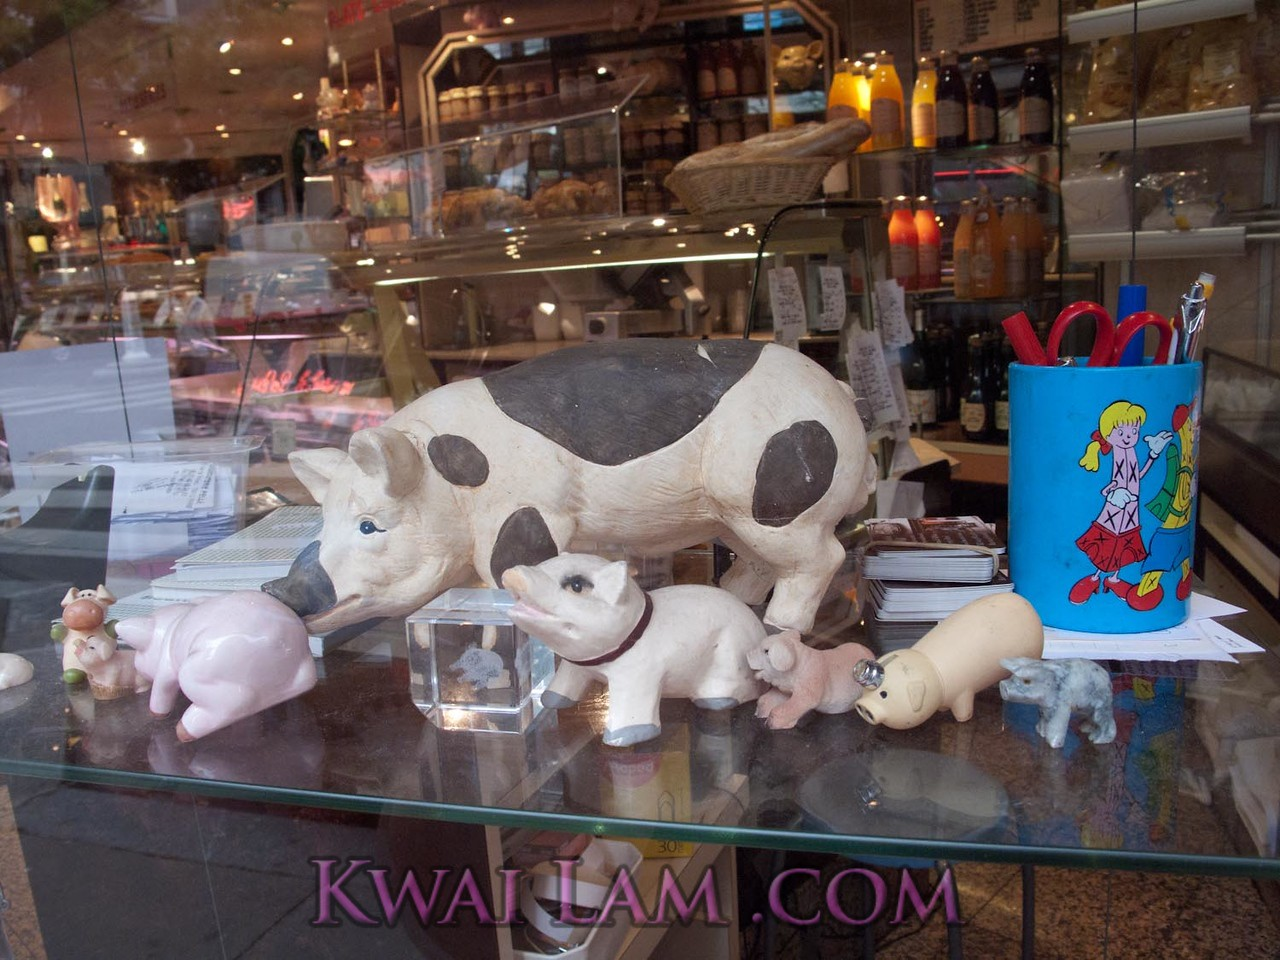 Pigs in the window. Humor? Altar? Delectables at Charcuterie Pelle, 13th Arrondisment, Paris.